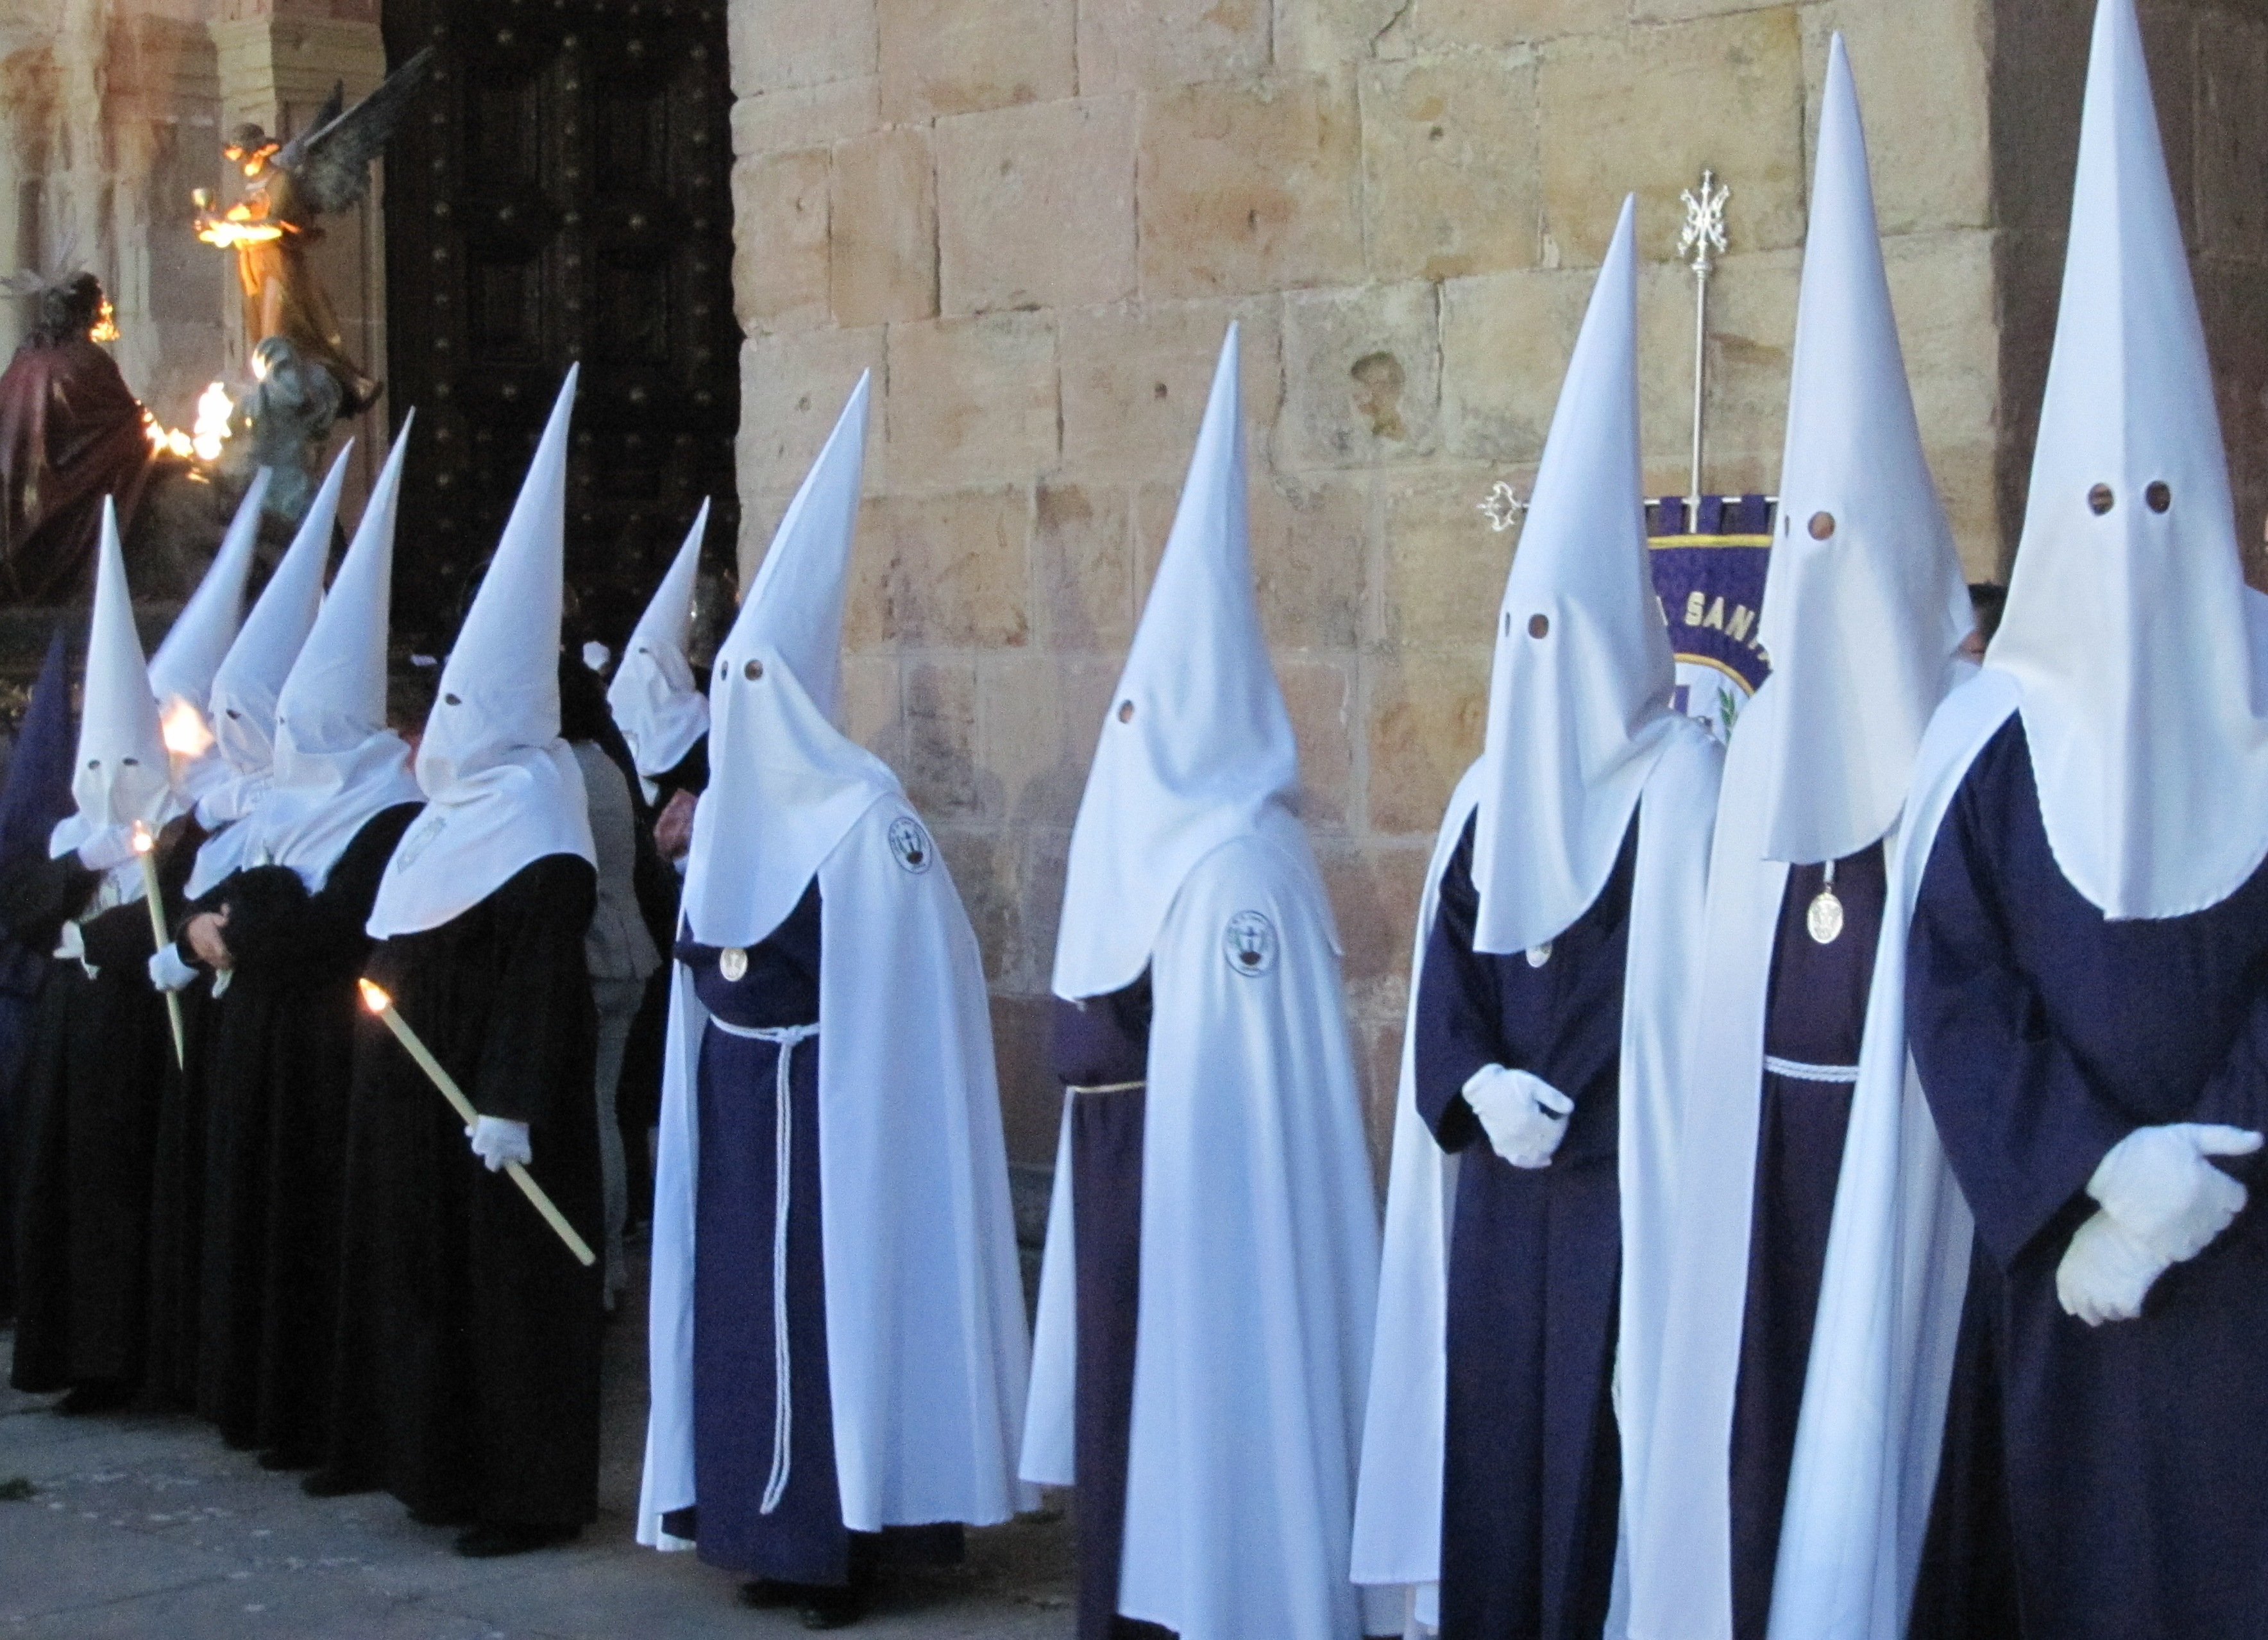 10 Burning Facts About The Ku Klux Klan